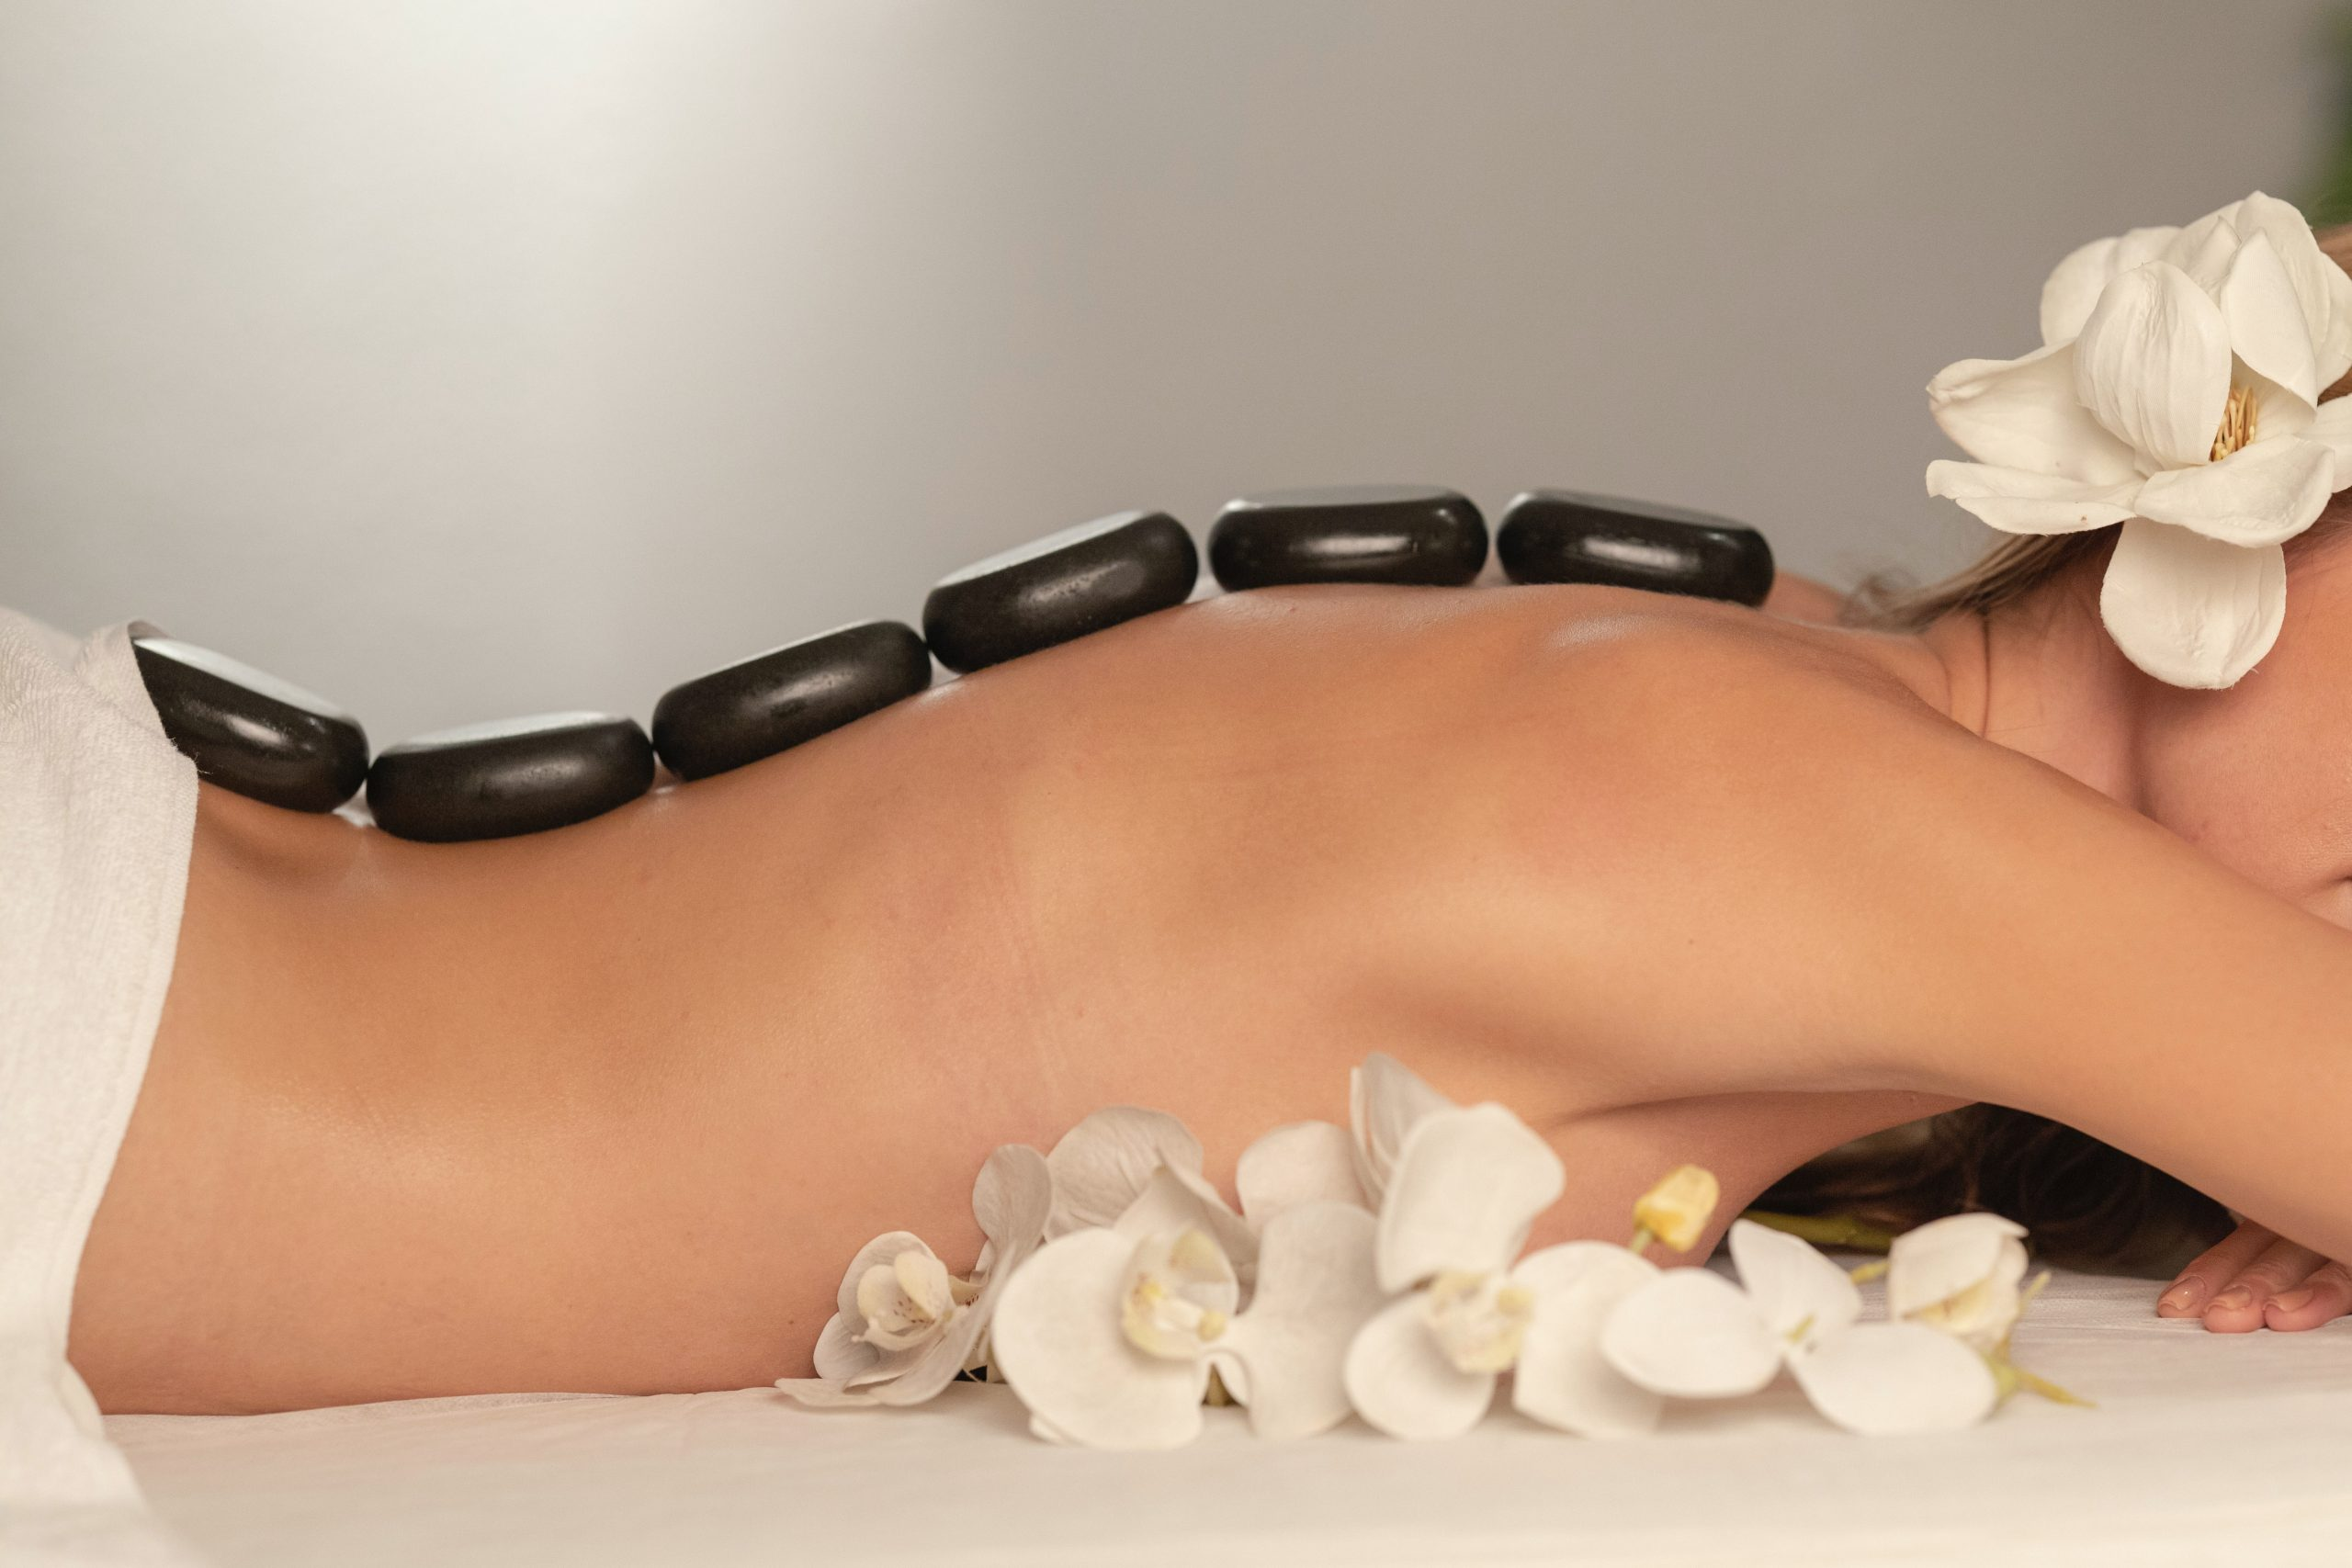 What does a good erotic massage consist of?